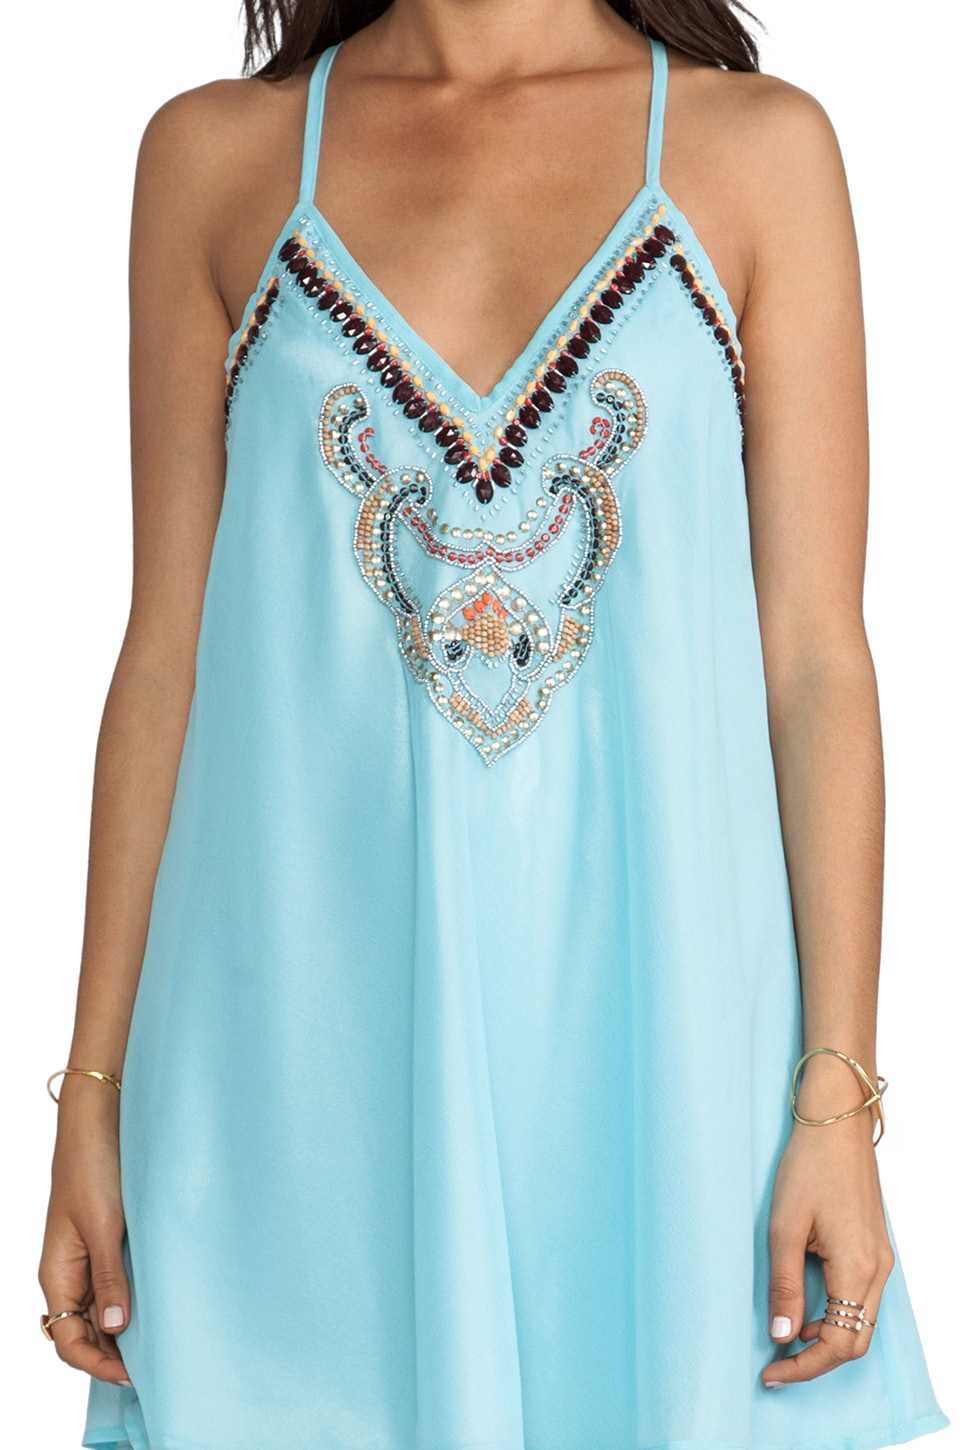 6 SHORE ROAD On the Rocks Dress in Caribbean